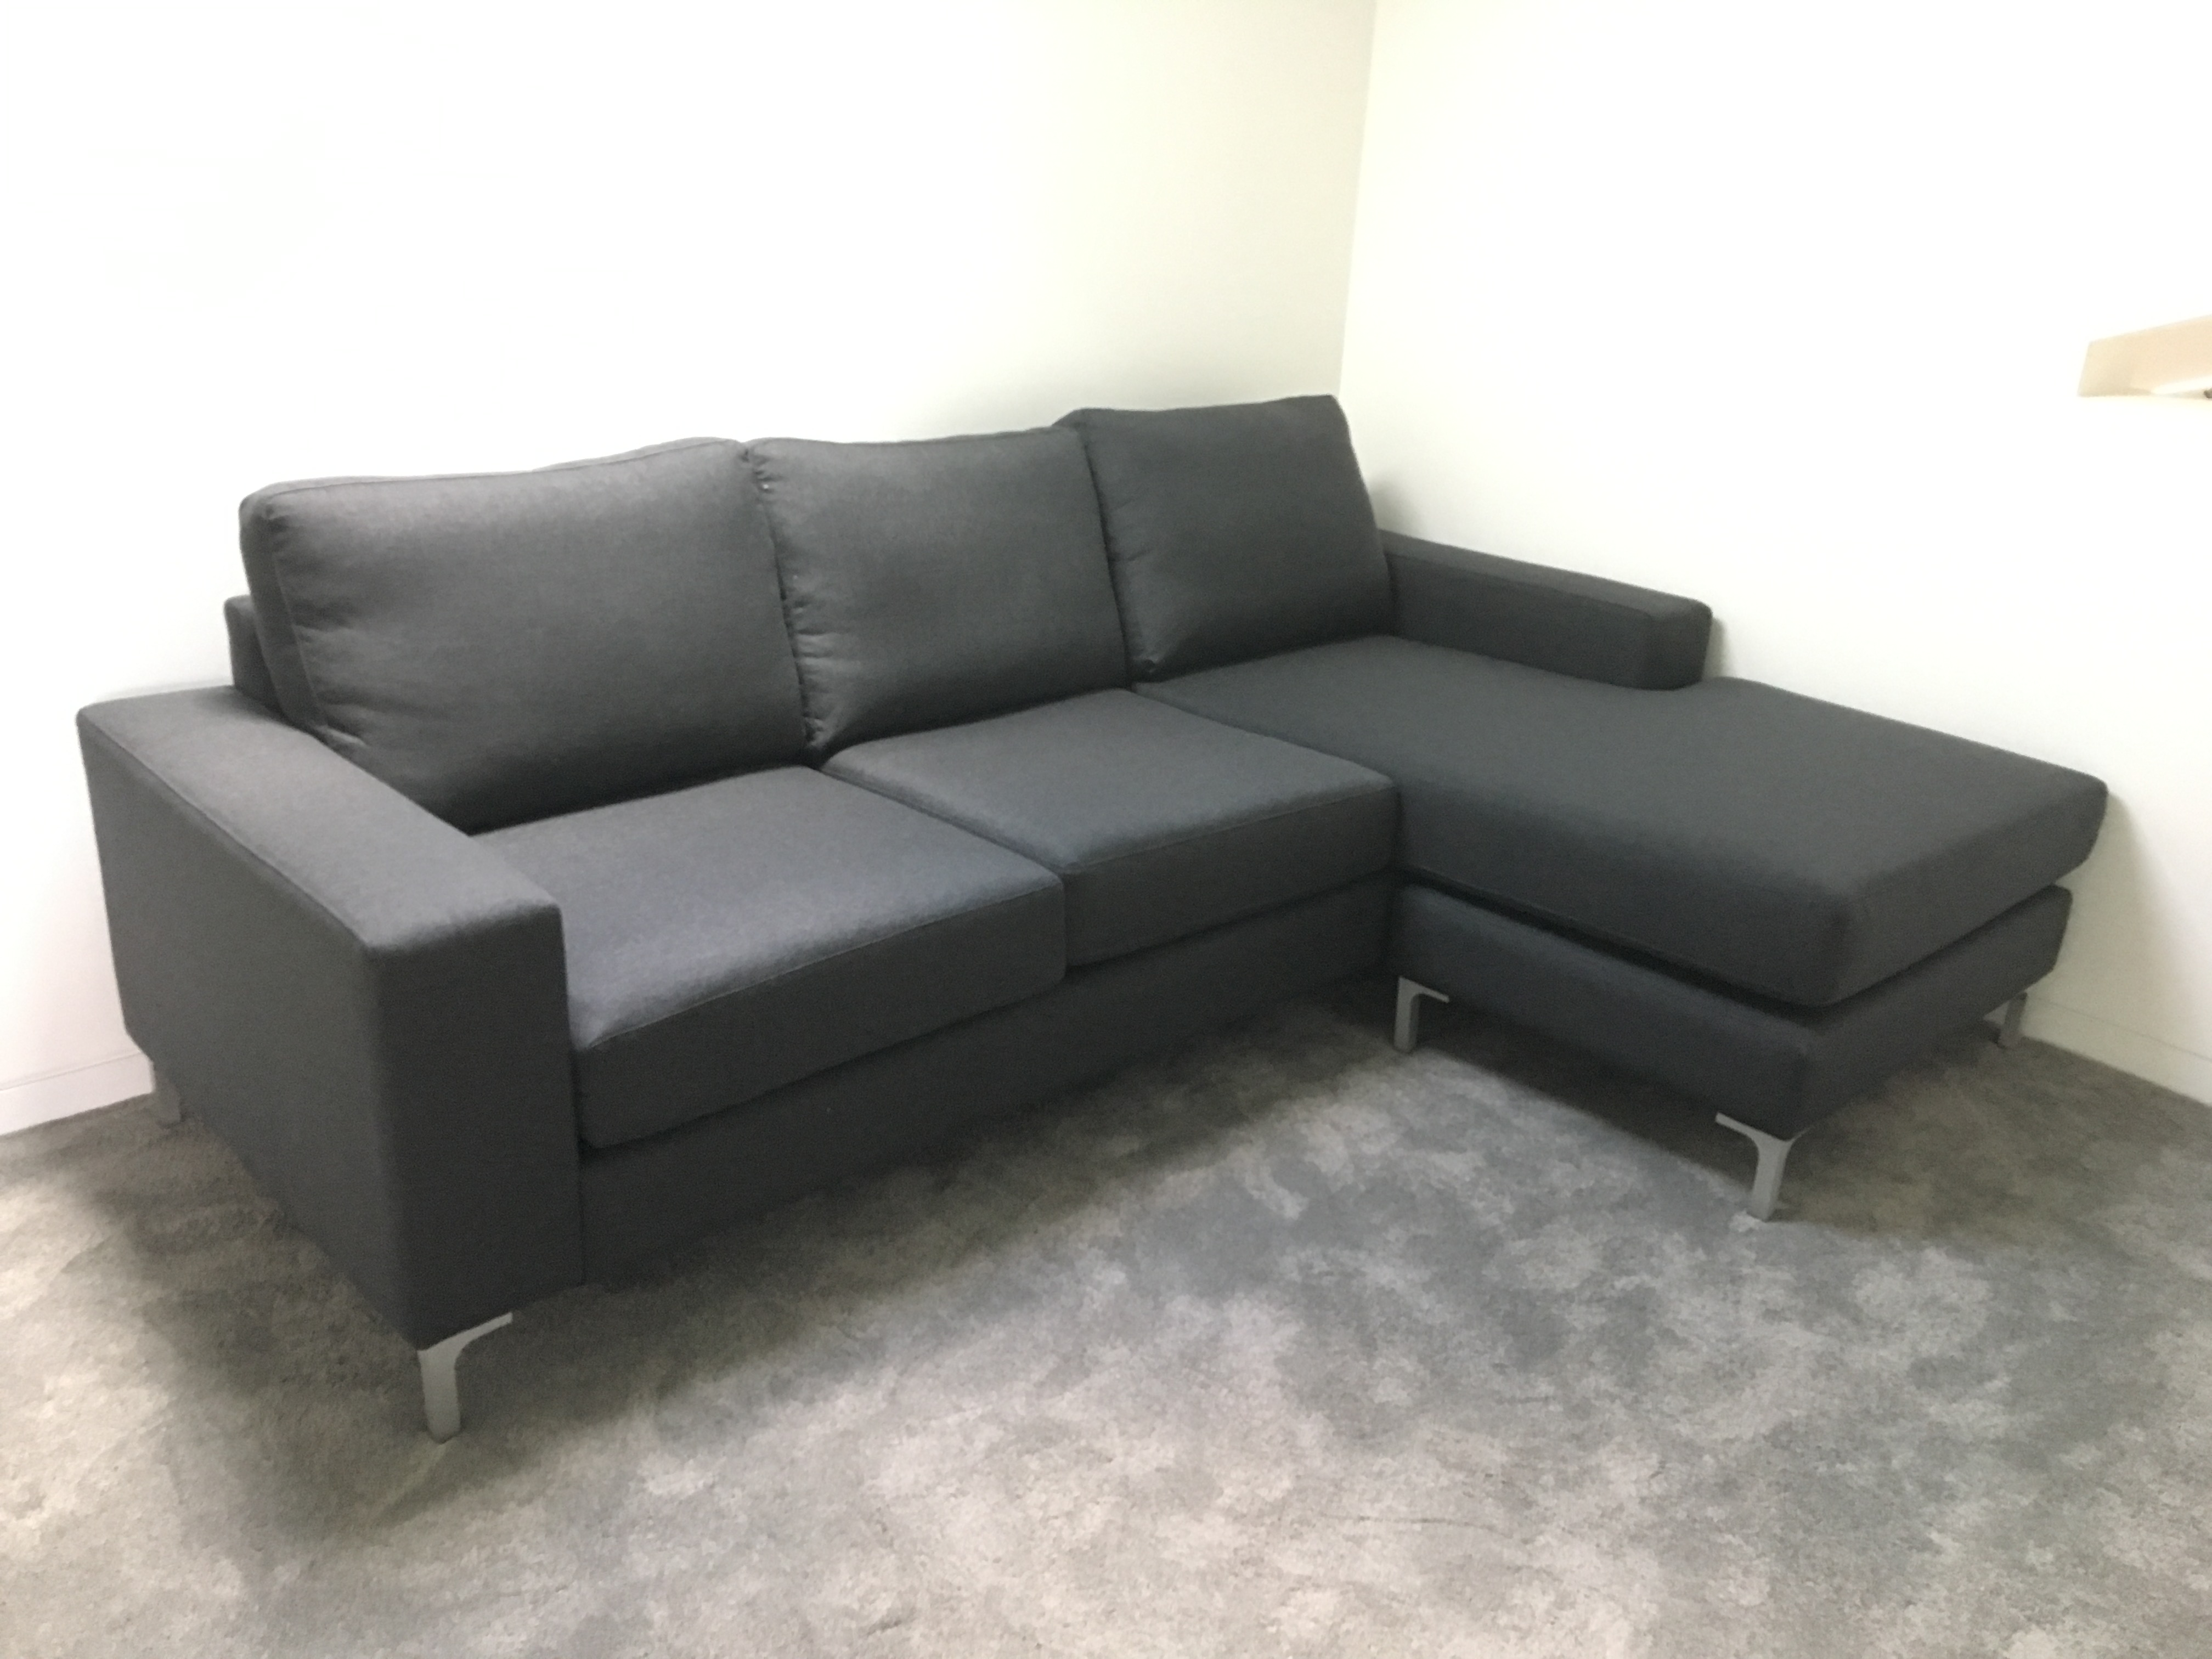 Best Quality Sofas Australia Leather Lounges Quality Lounges And Lowest Prices Known